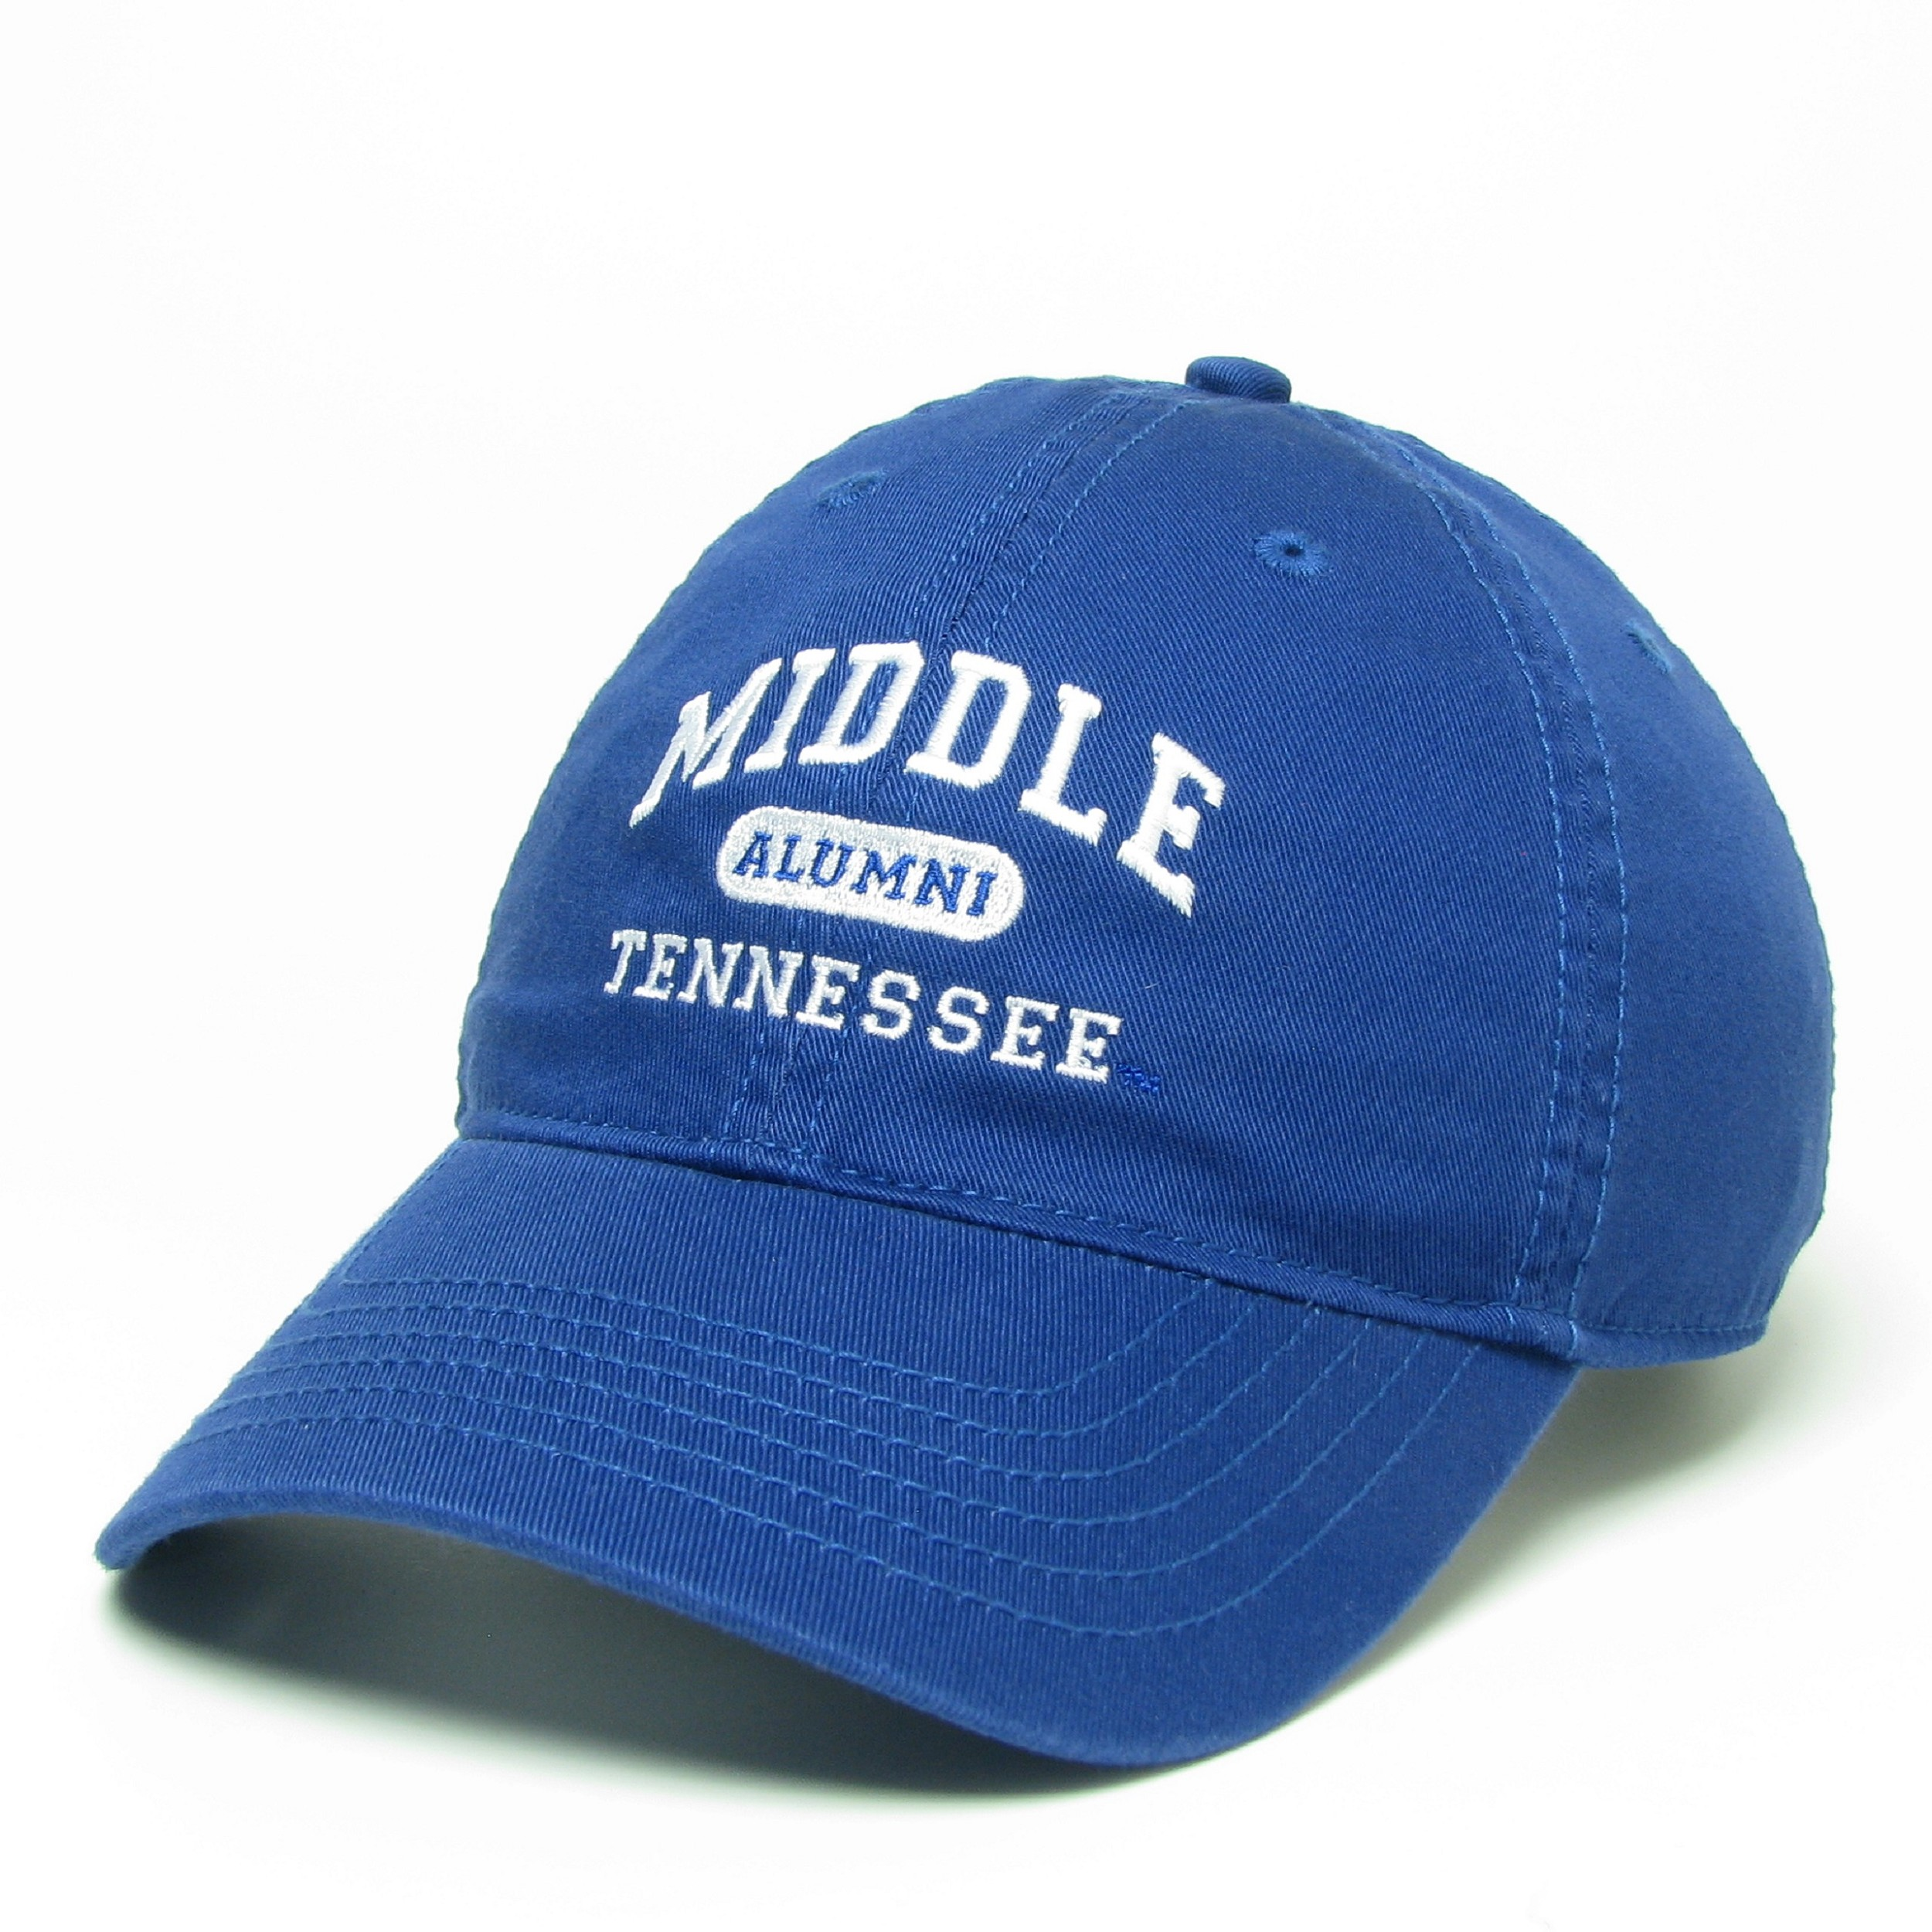 Middle Tennessee Alumni Relaxed Twill Hat